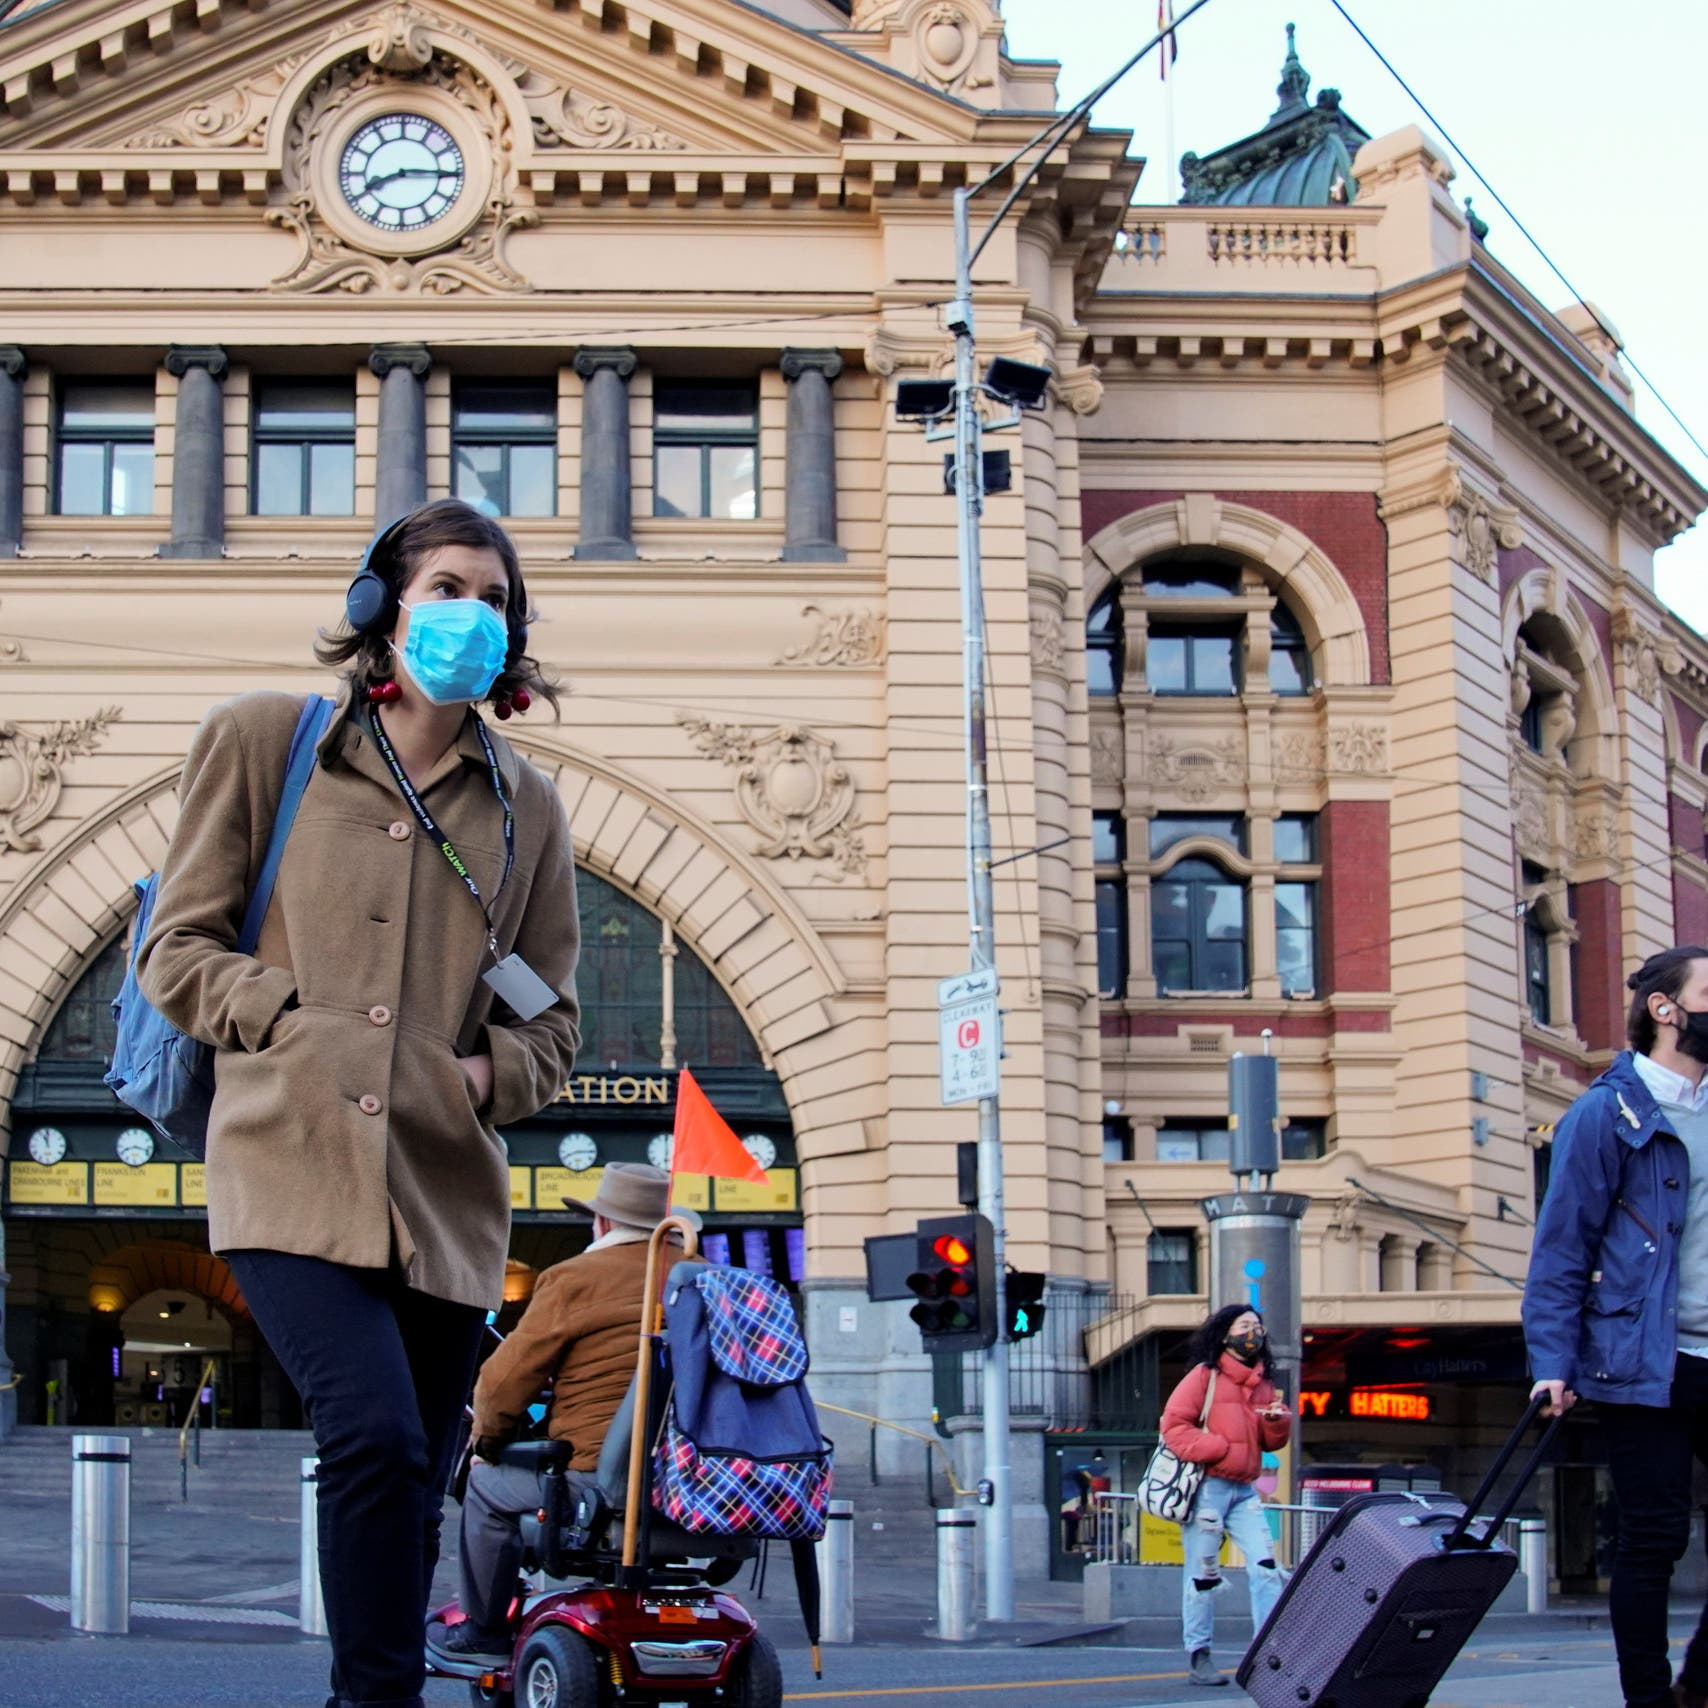 Australia continues to battle with persistent COVID-19 outbreaks